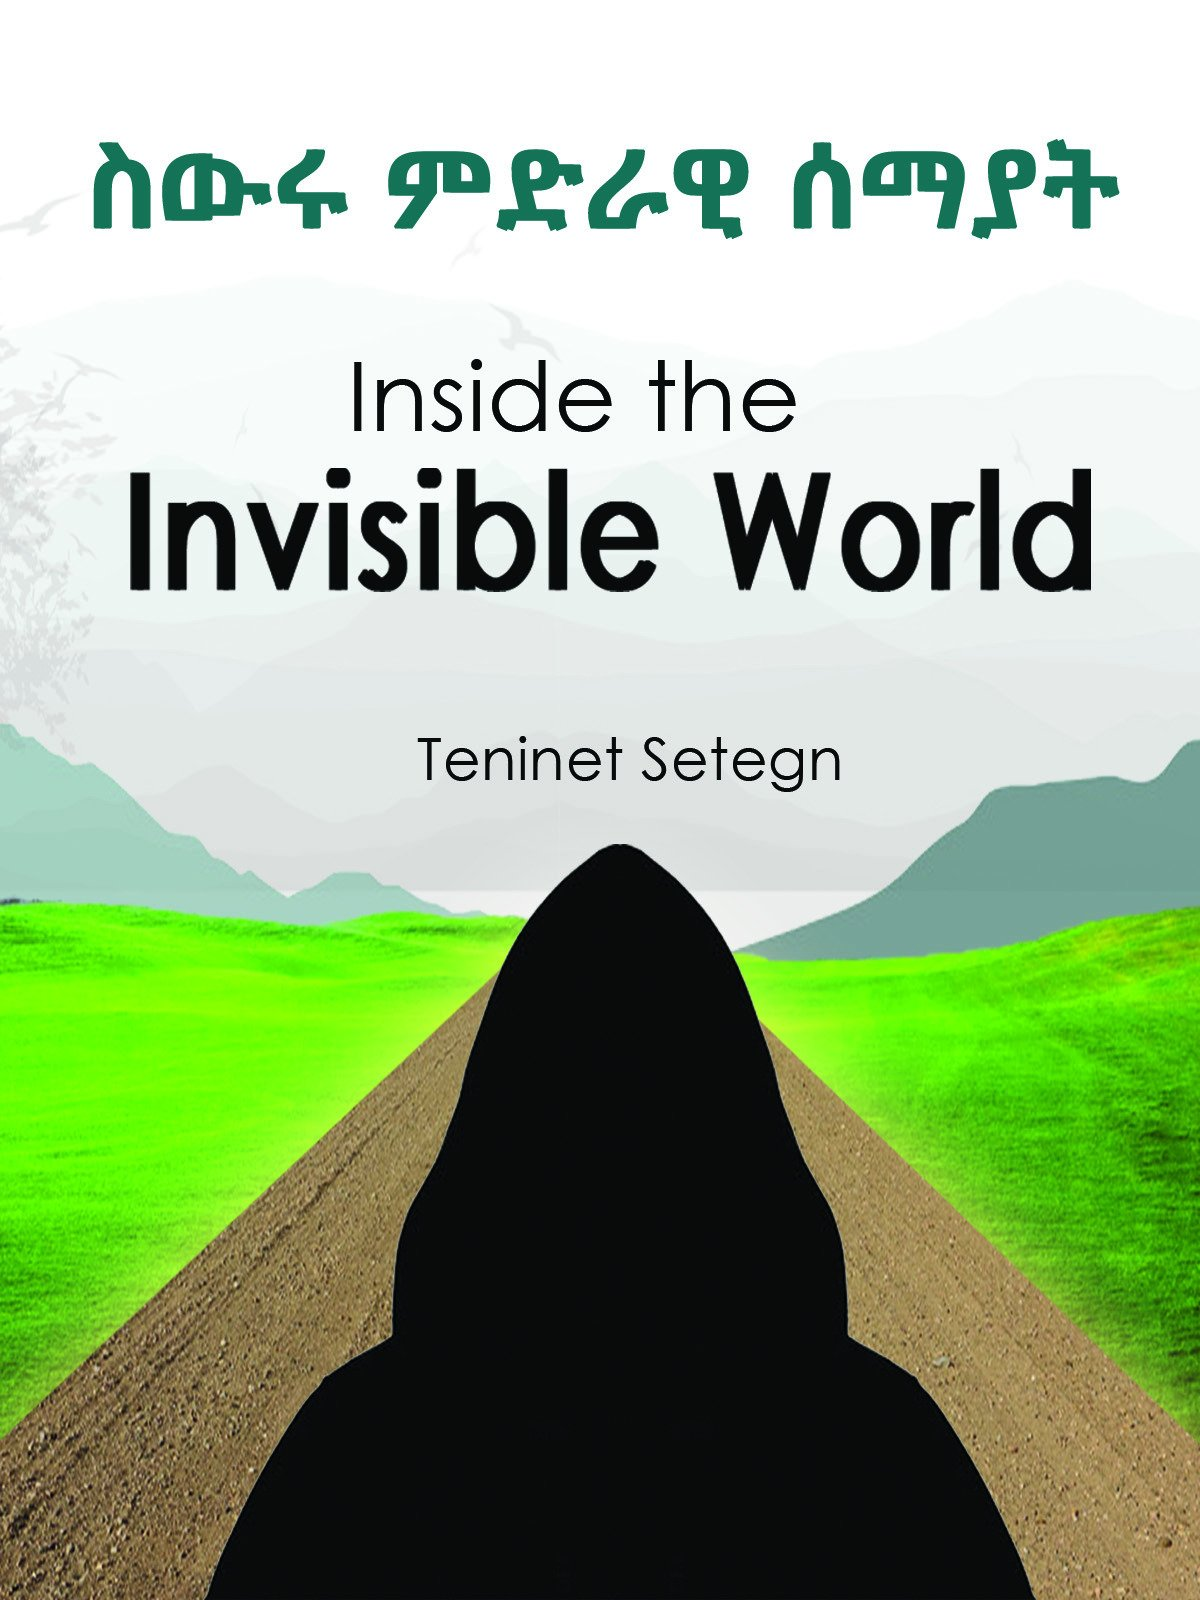 Inside the invisible world